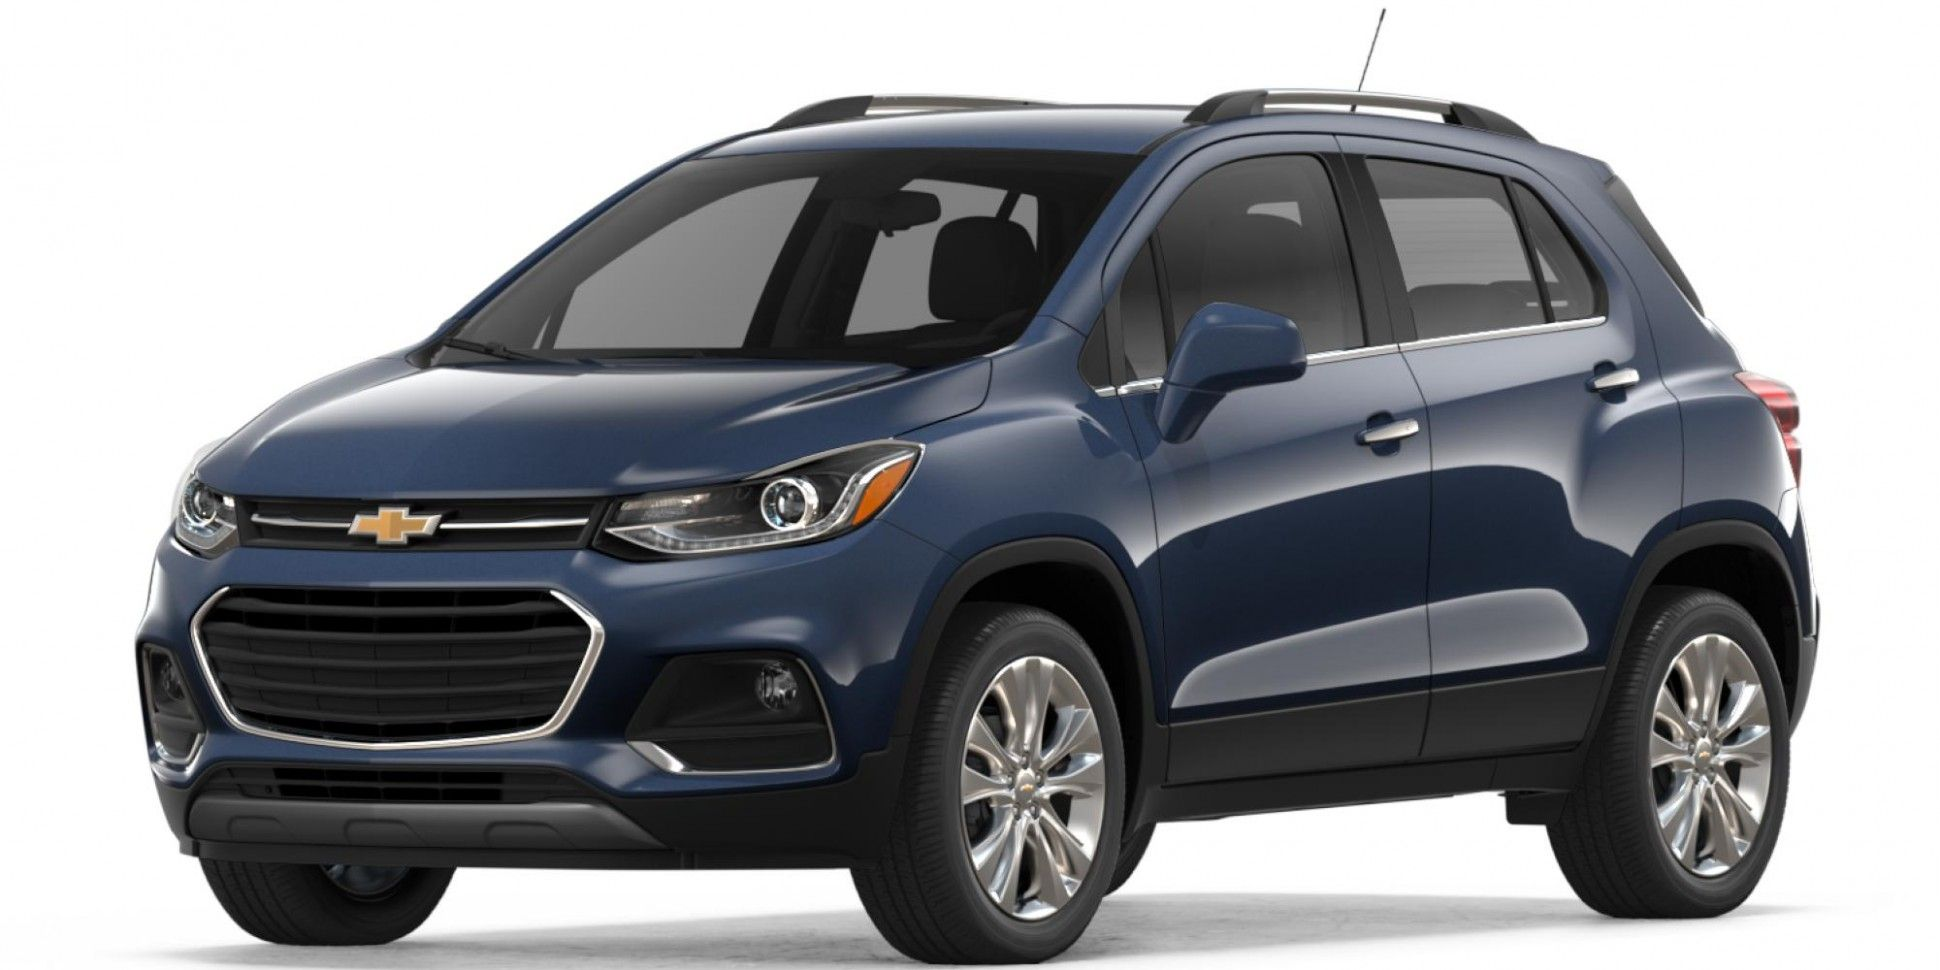 Chevy Small Suv >> Pin By Sports Cars On Sportscars In 2019 Chevrolet Trax